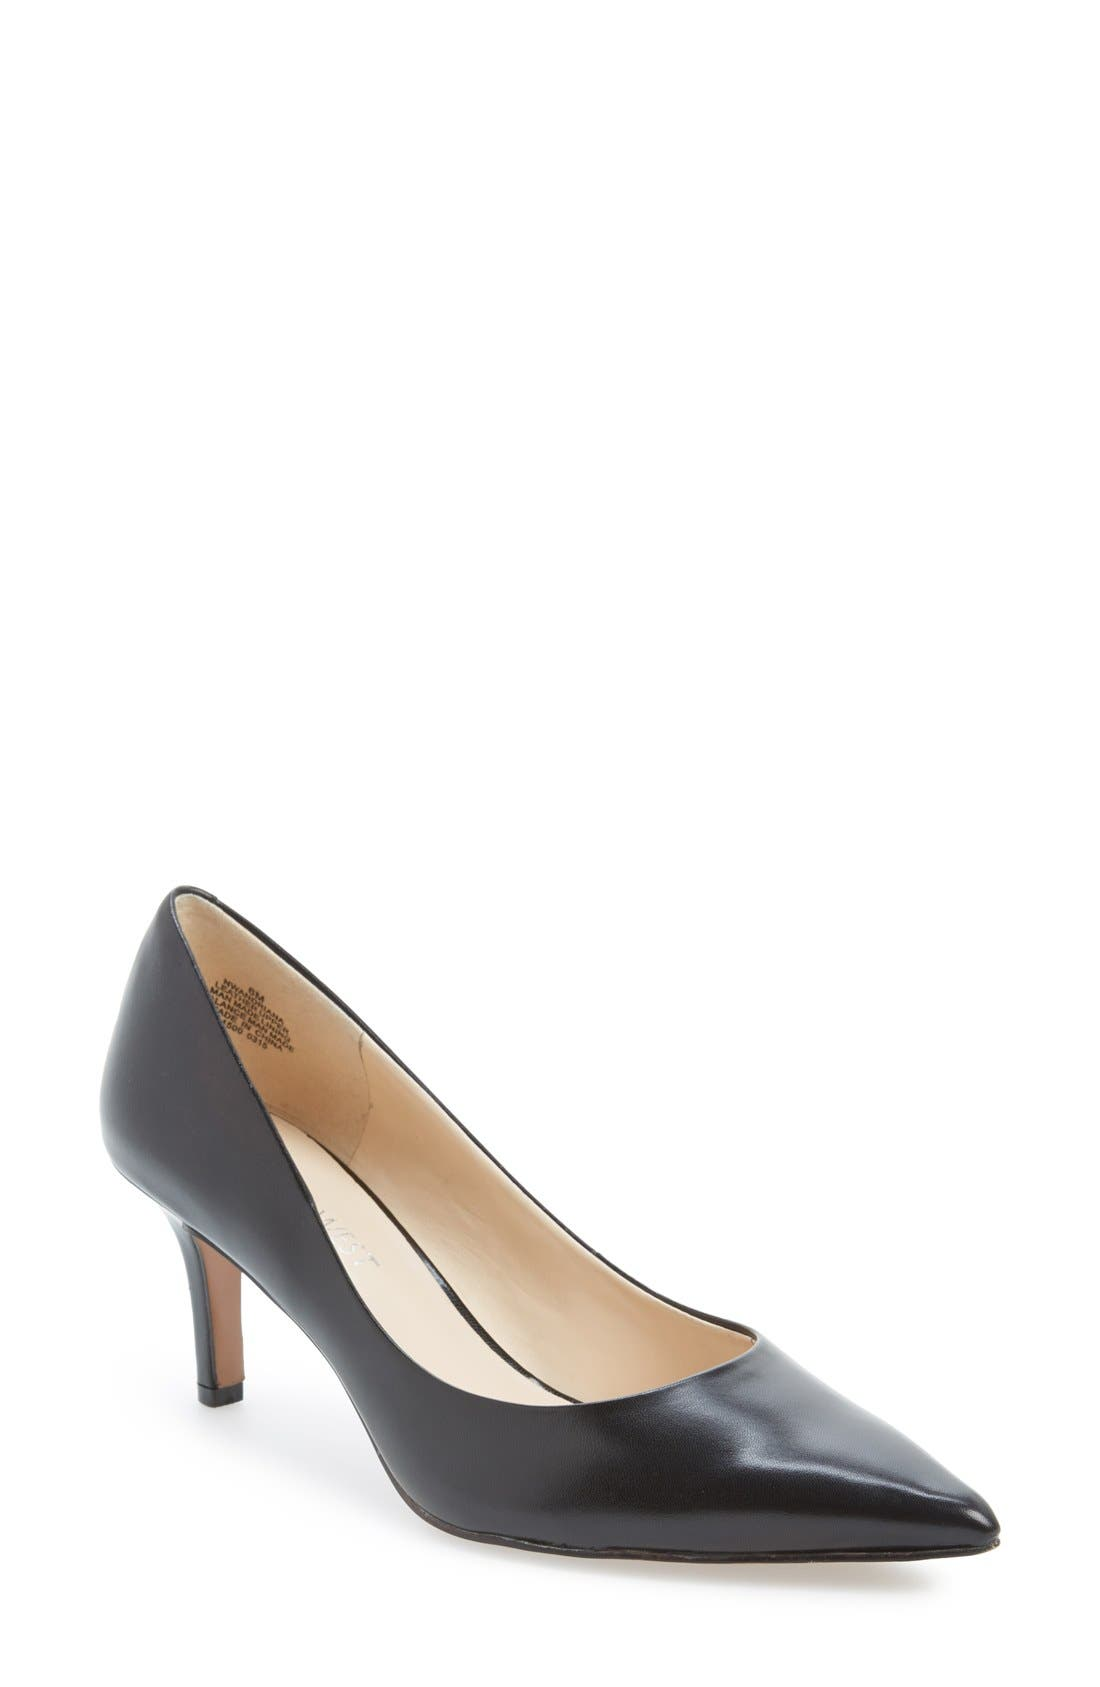 Alternate Image 1 Selected - Nine West 'Adriana' Pointy Toe Pump (Women)